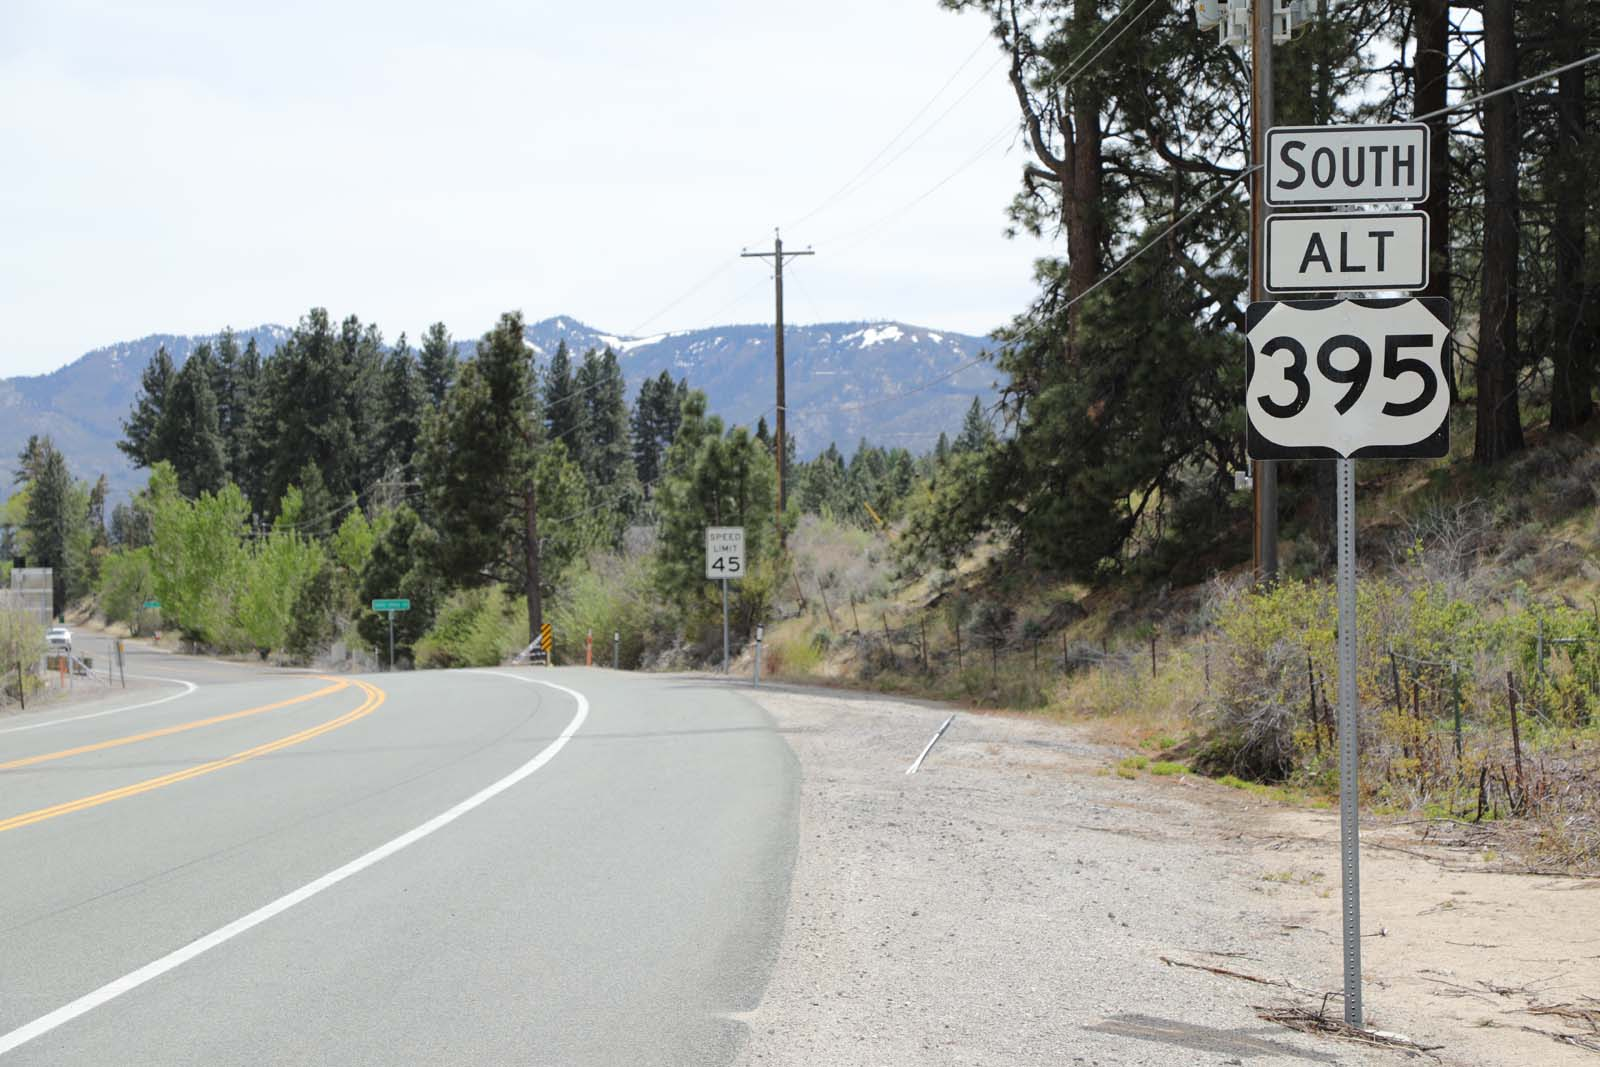 Single lane closures will begin May 16 on sections of Alternate/Old U.S. 395 in Pleasant and Washoe valleys for roadway resurfacing.